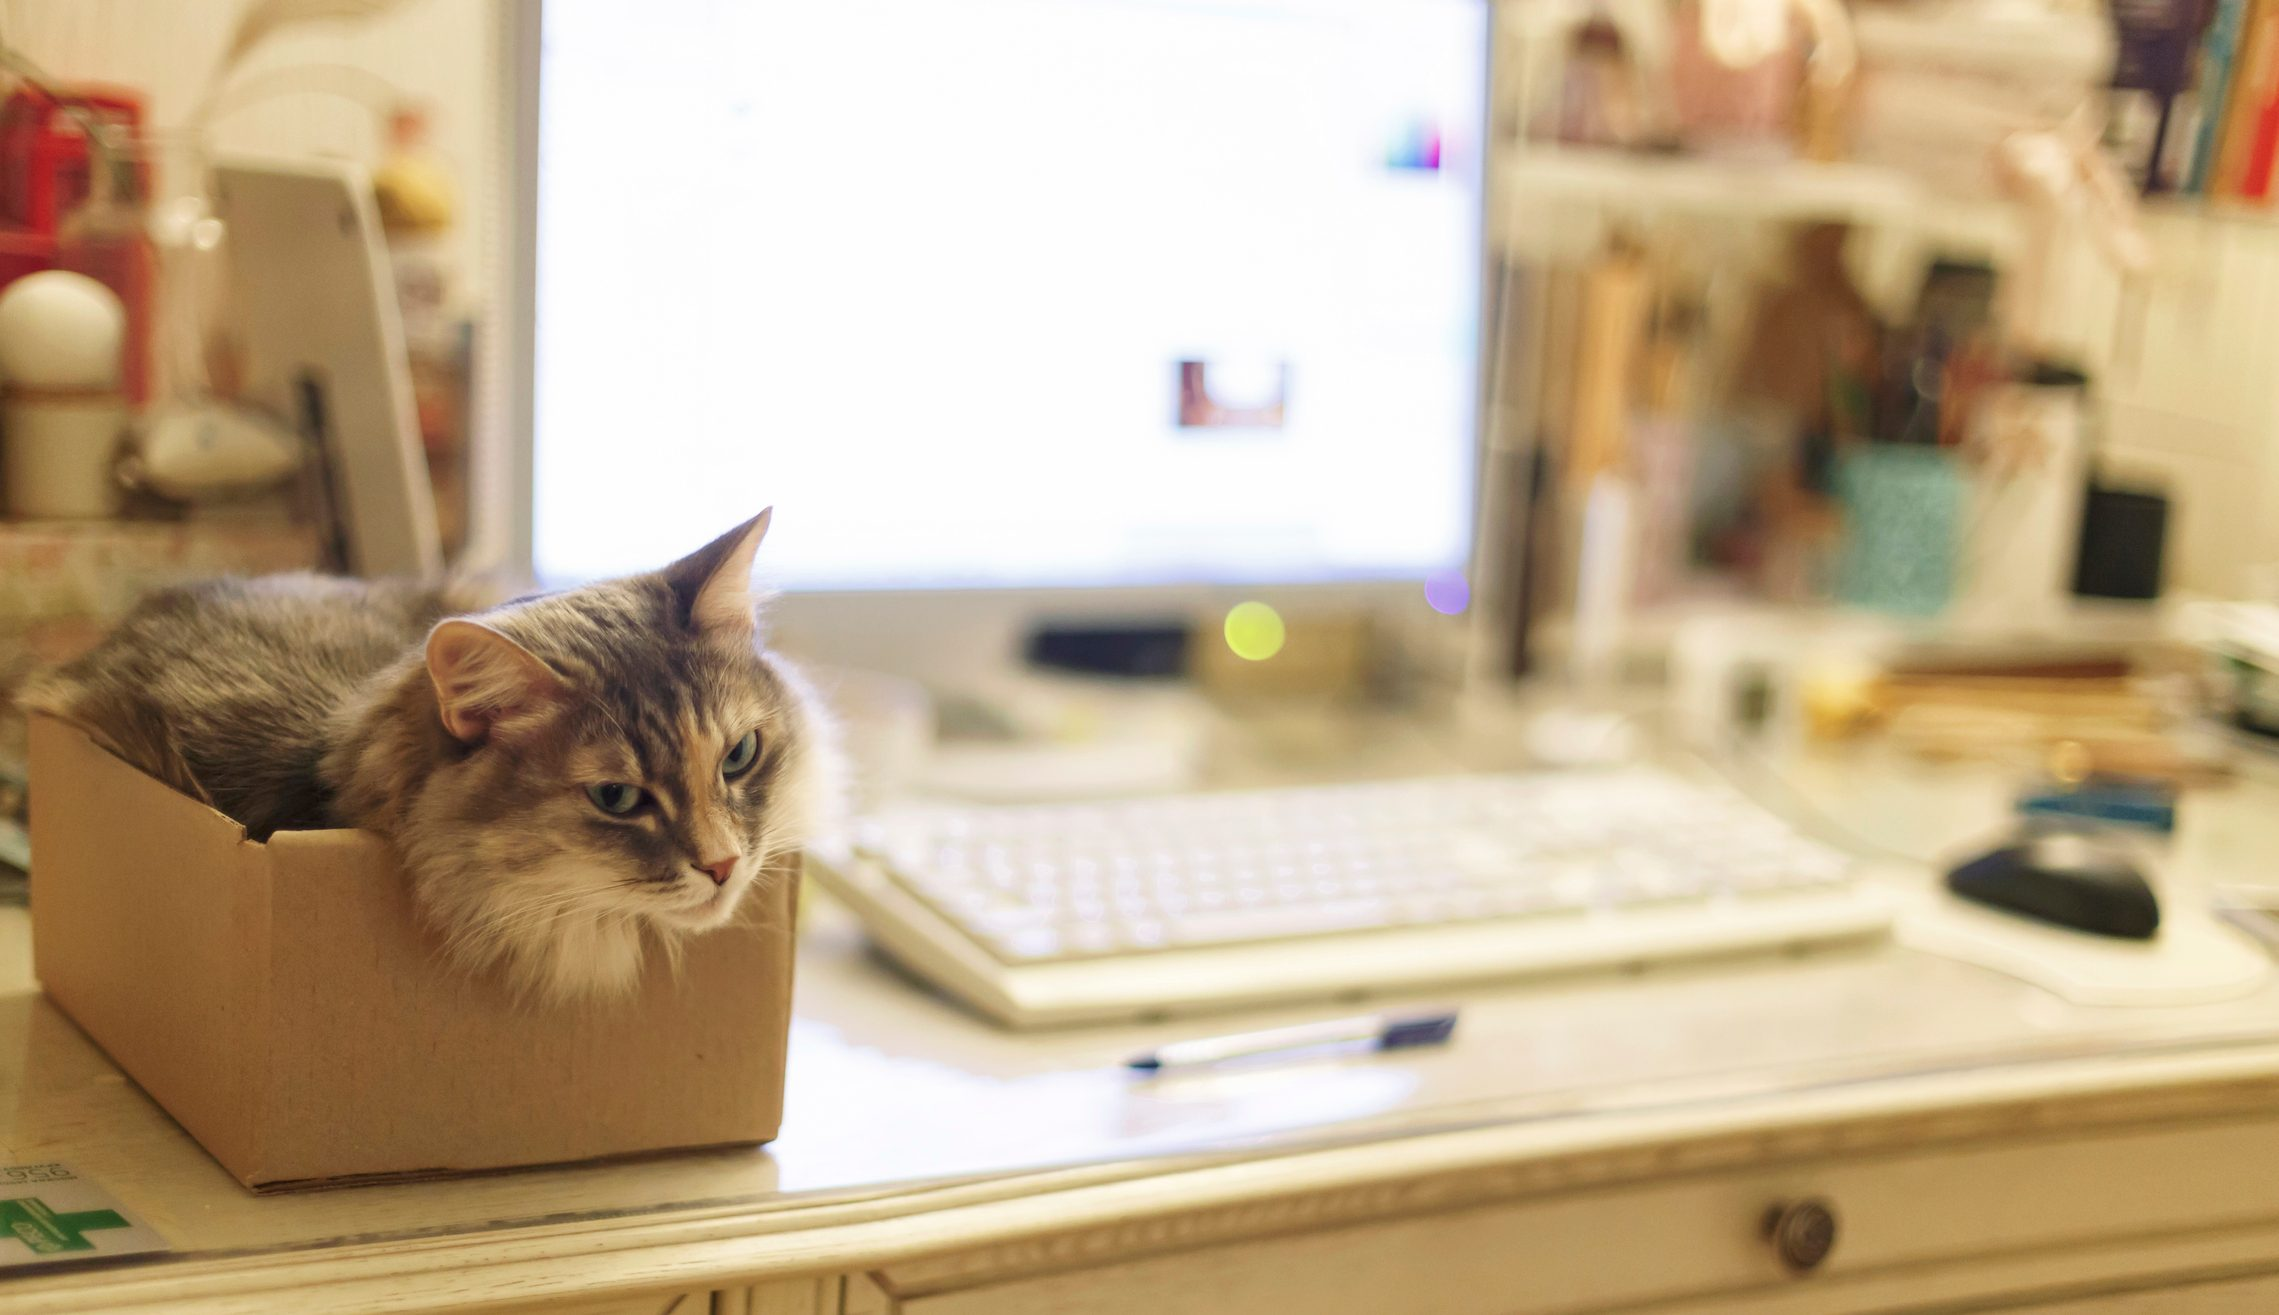 A cat sitting in the box in a home office